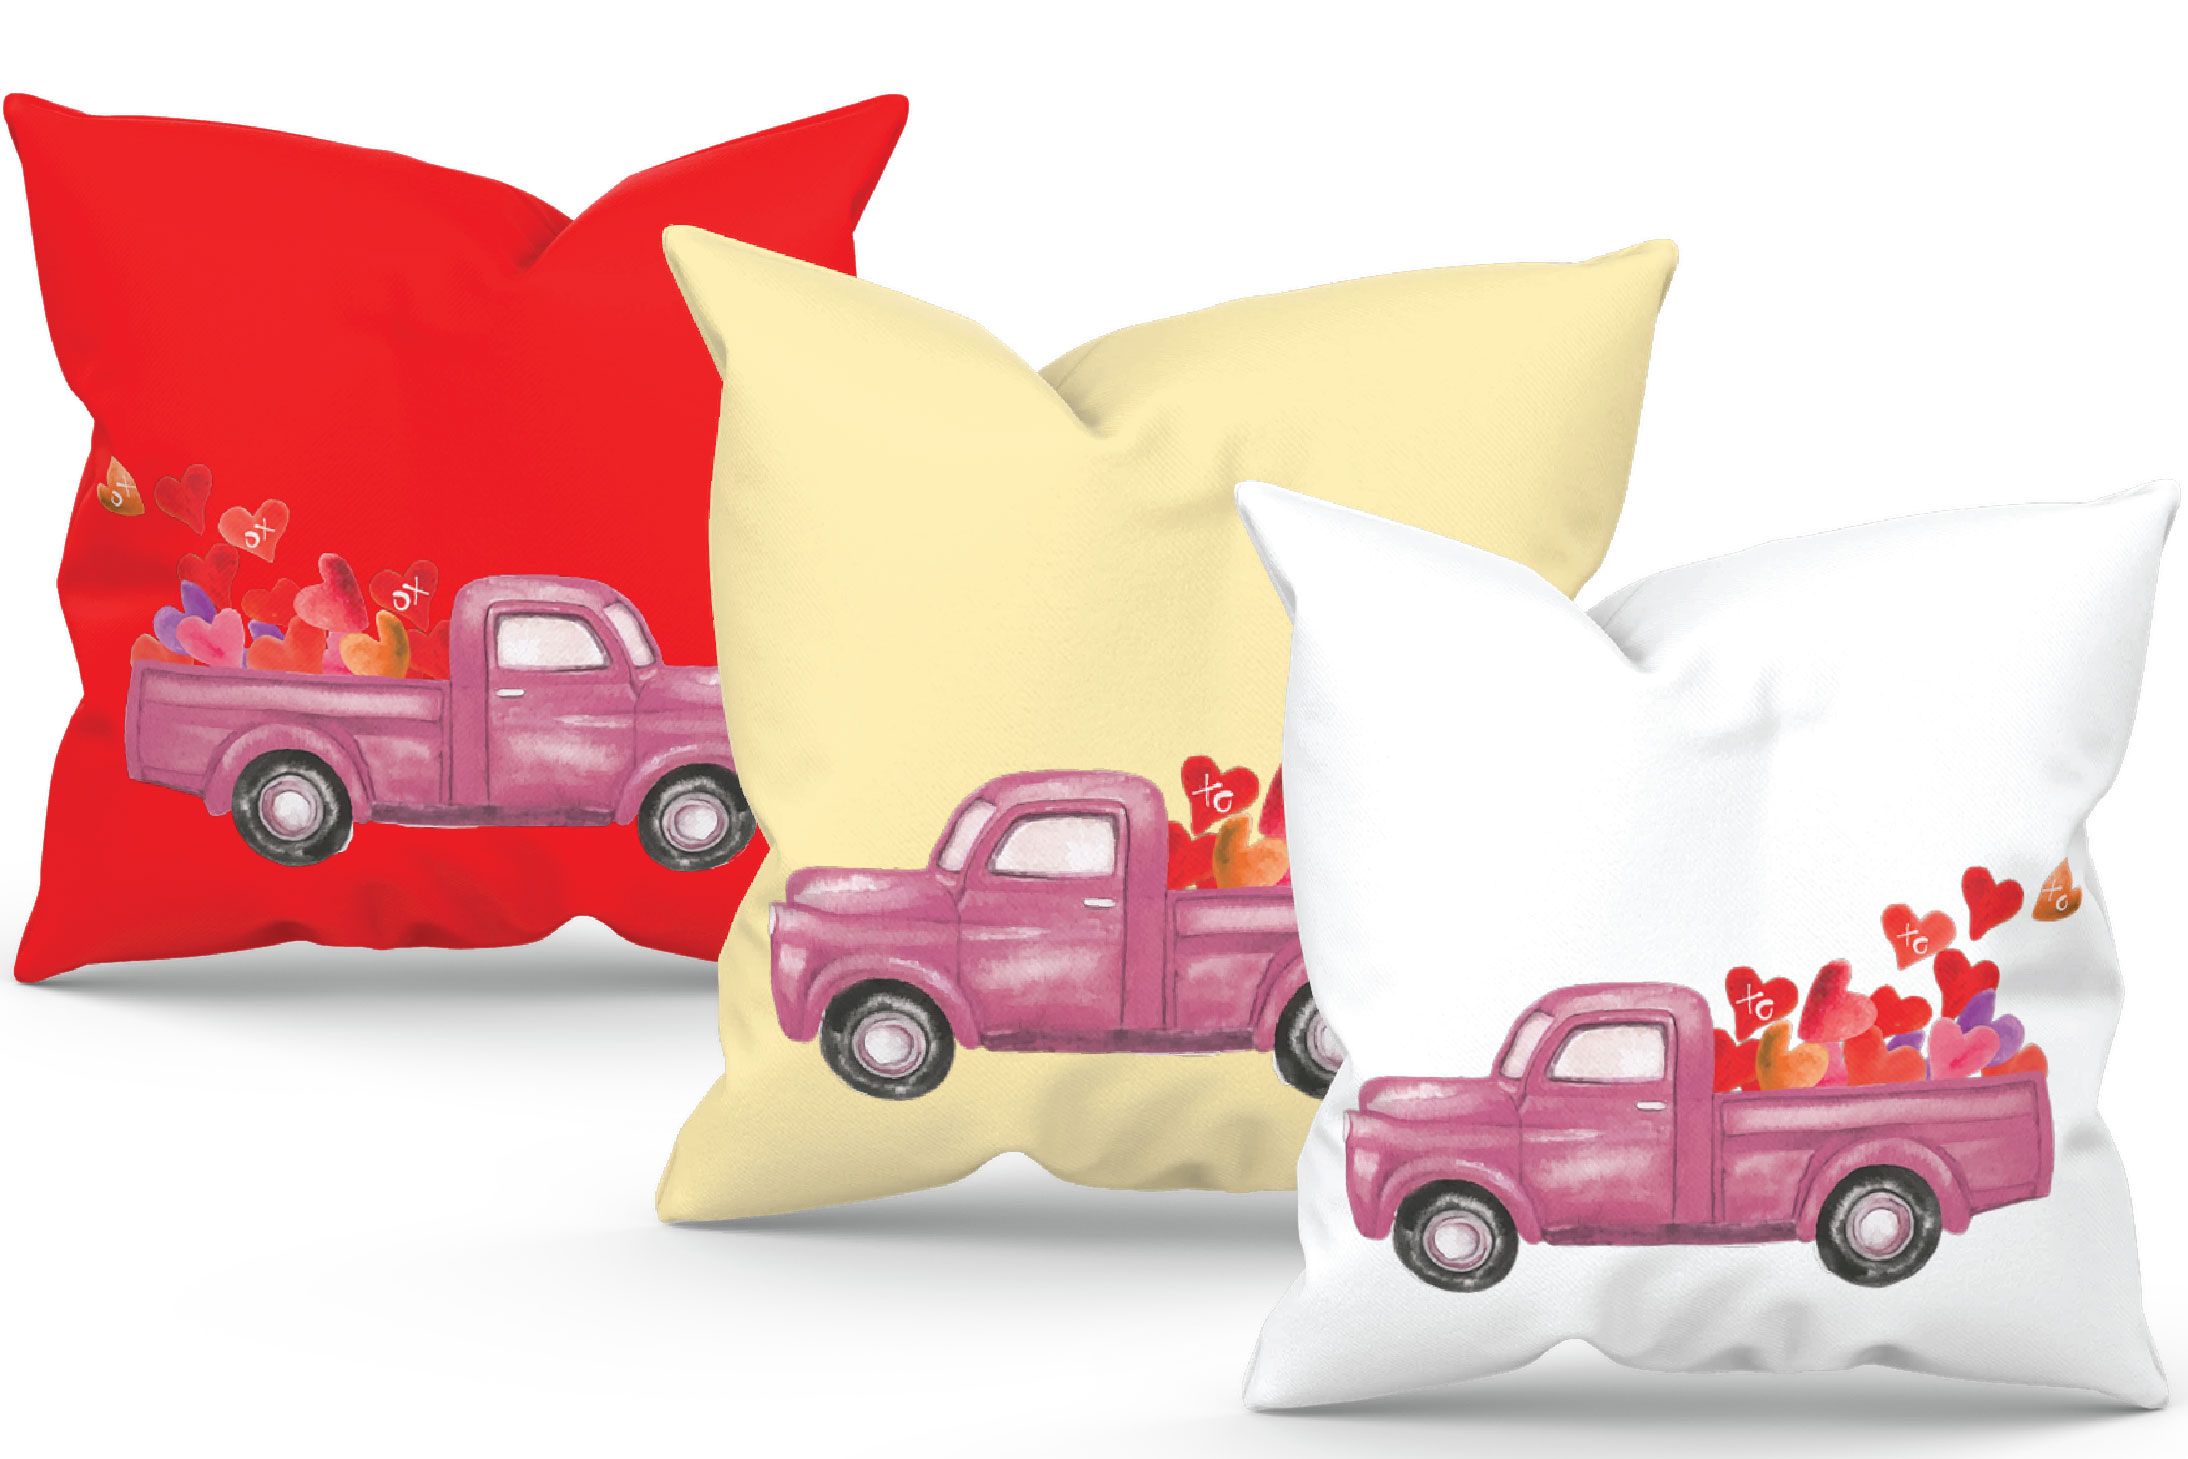 Watercolor vintage Valentine truck load with kisses XOXO png example image 5